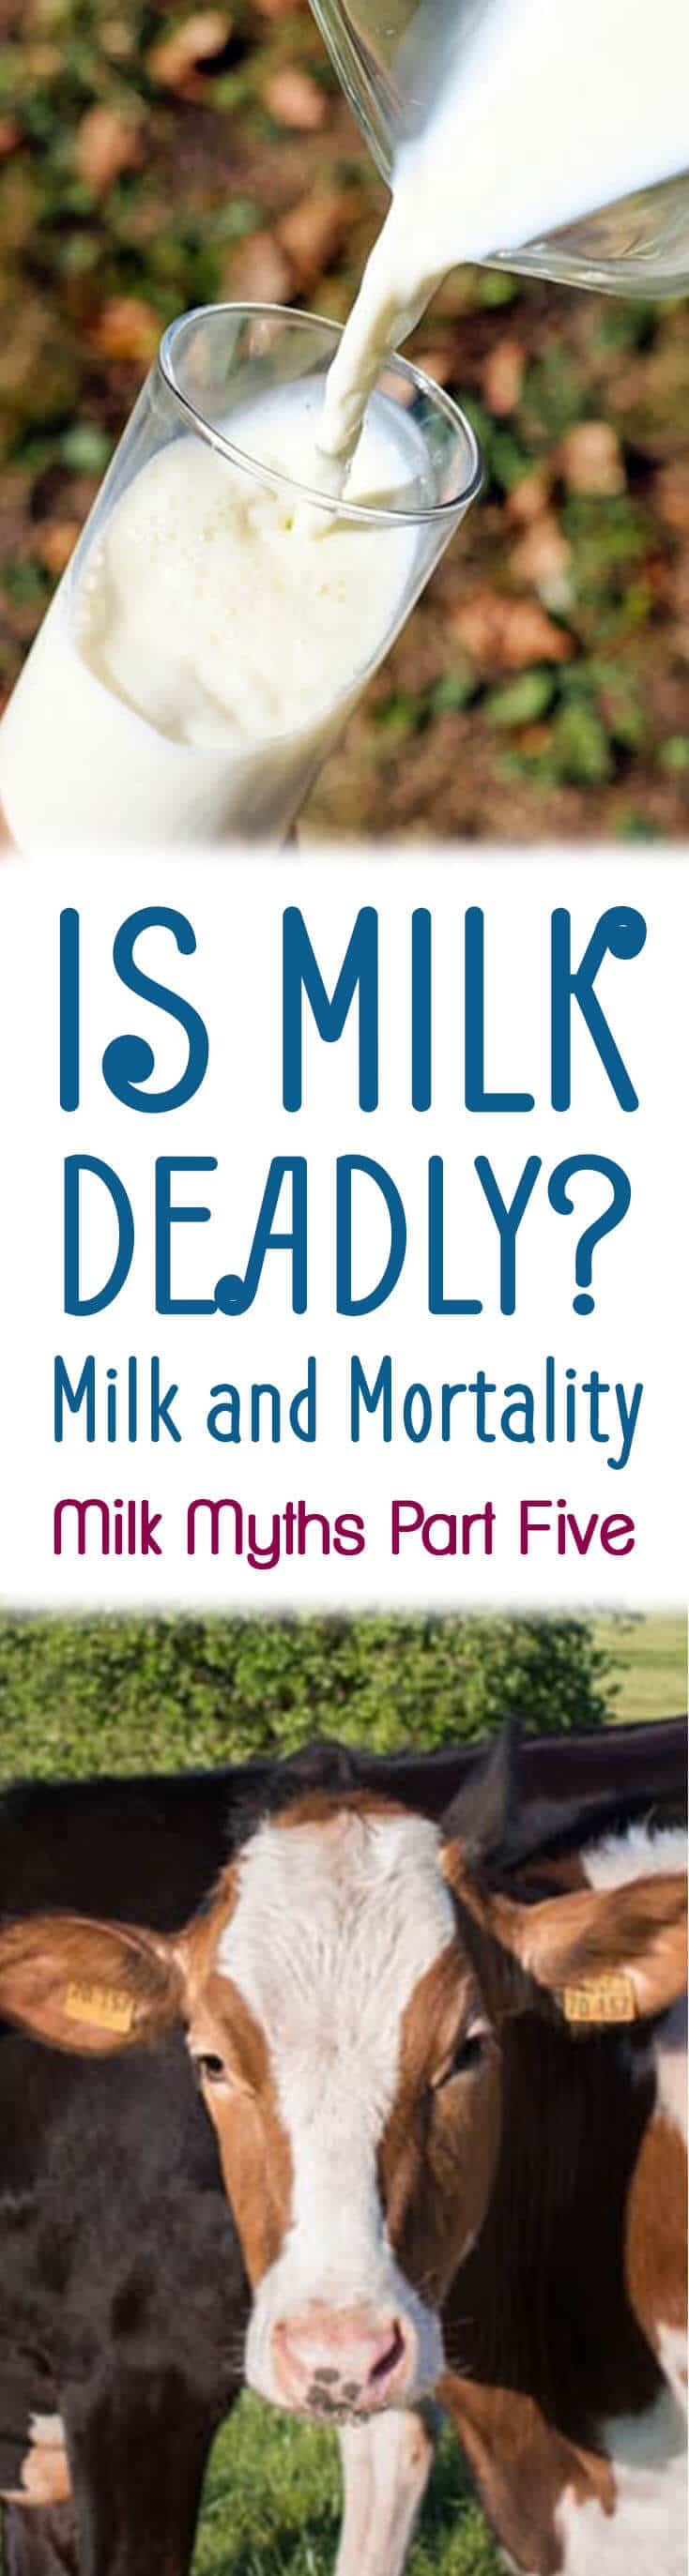 In part 5 of Dairy Myths, we answer the question is milk deadly? What does the research say about milk and mortality?